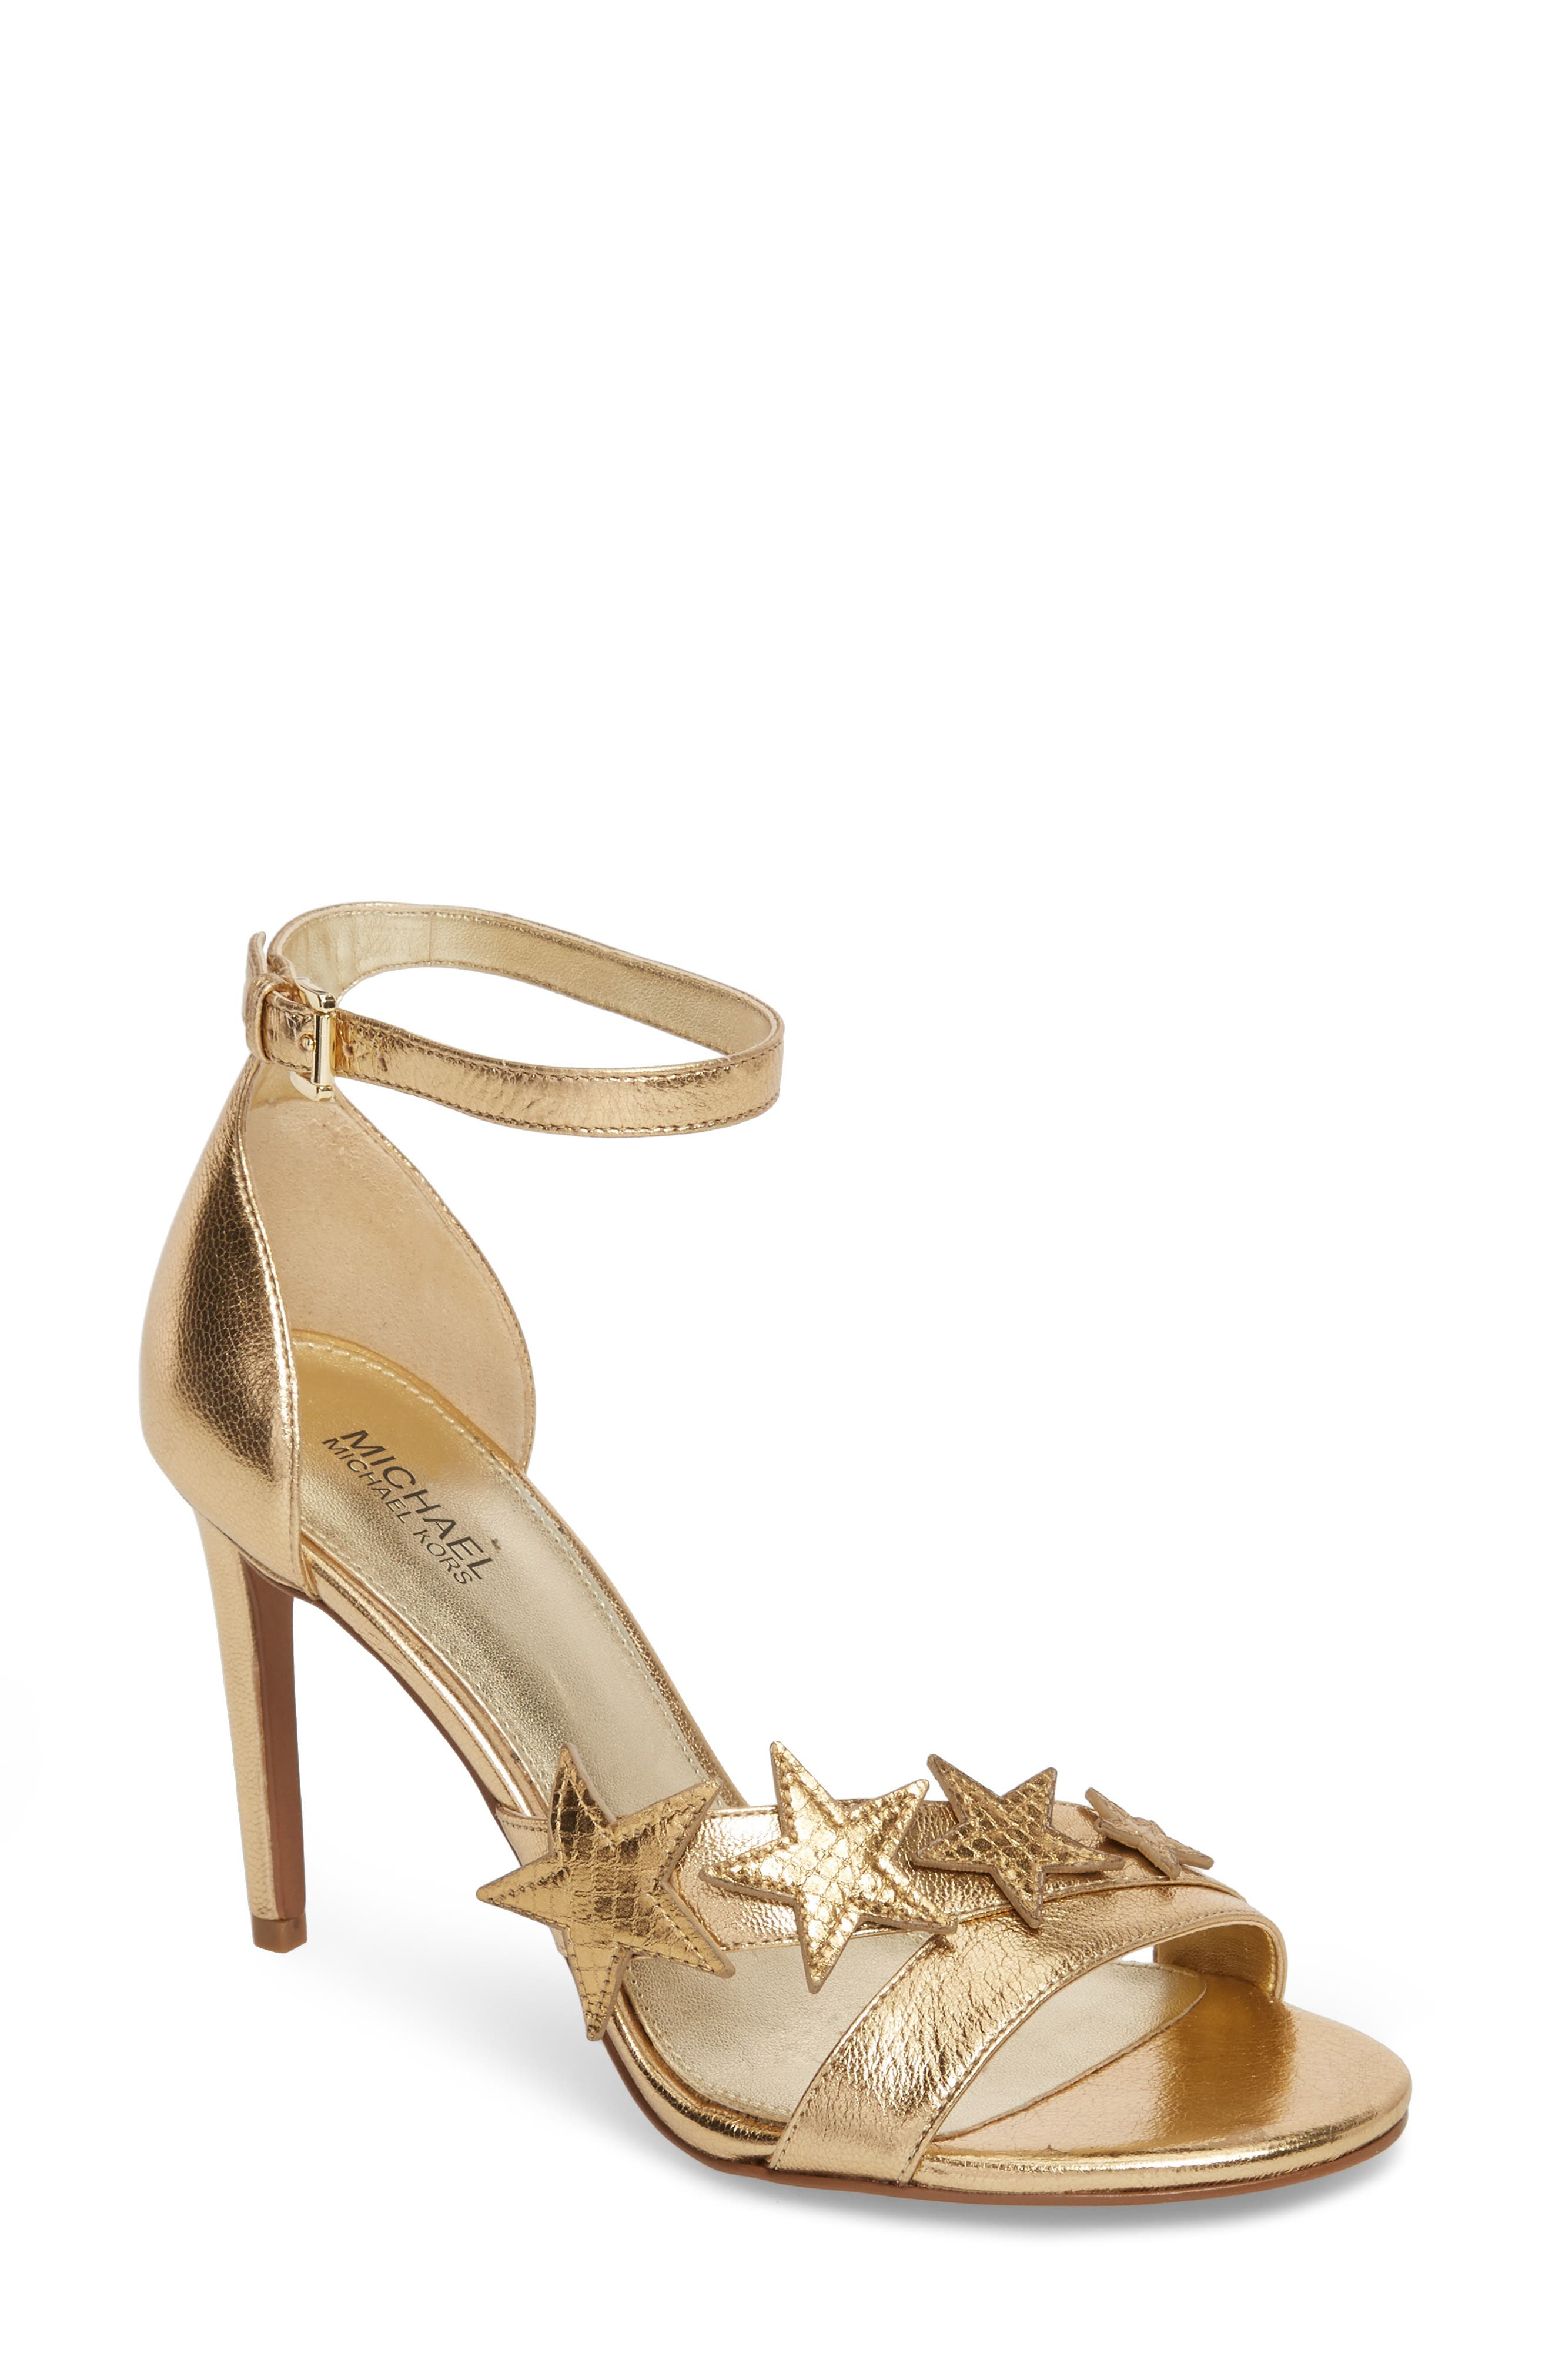 Lexie Sandal,                             Main thumbnail 1, color,                             Pale Gold Nappa Leather